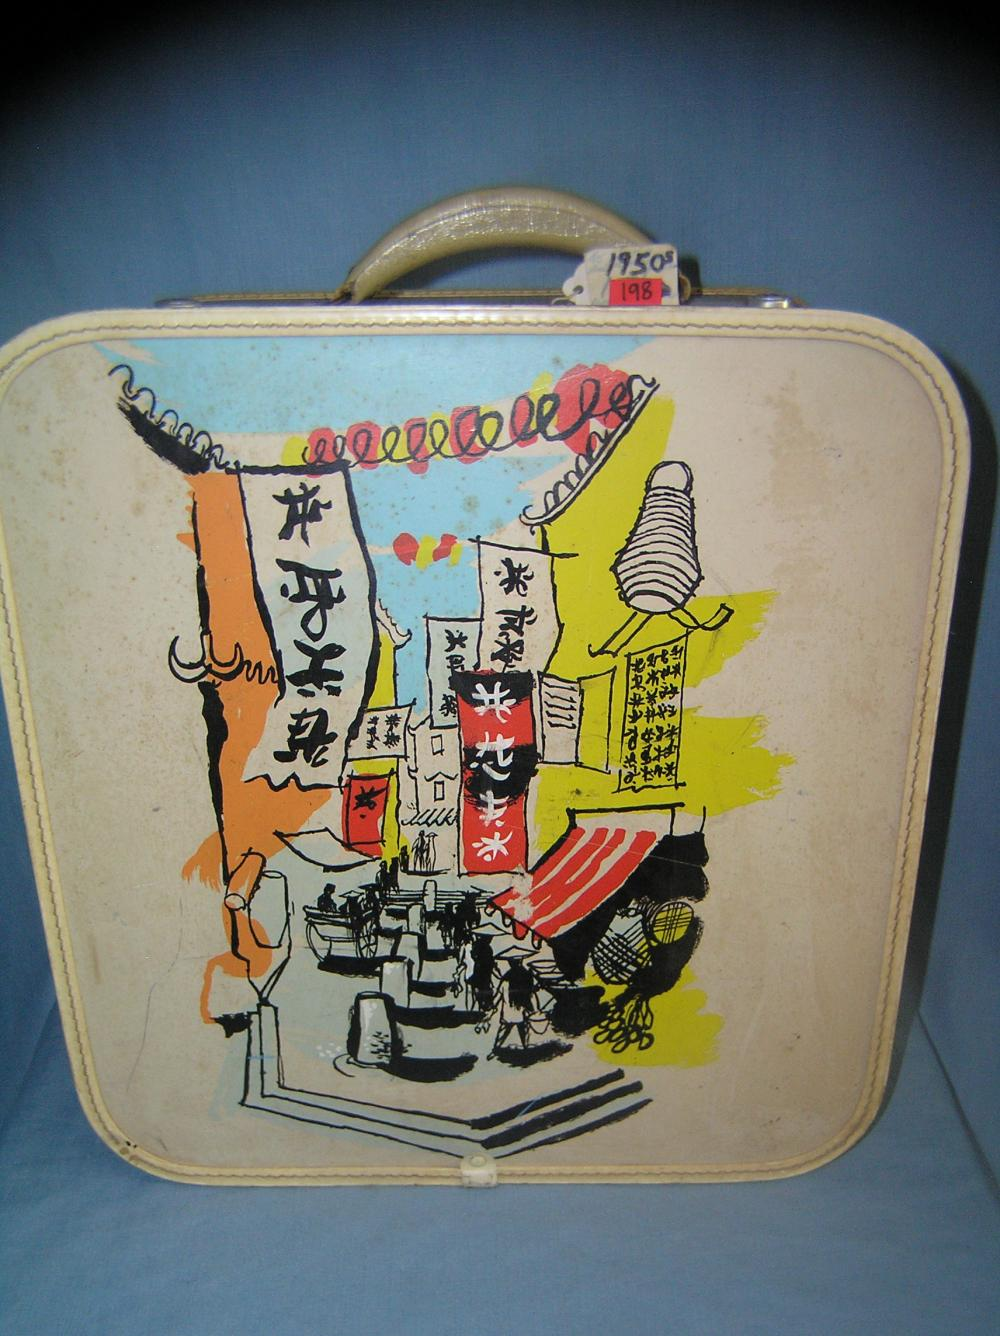 EARLY ASIAN PAINT DECORATED TRAVEL LUGGAGE